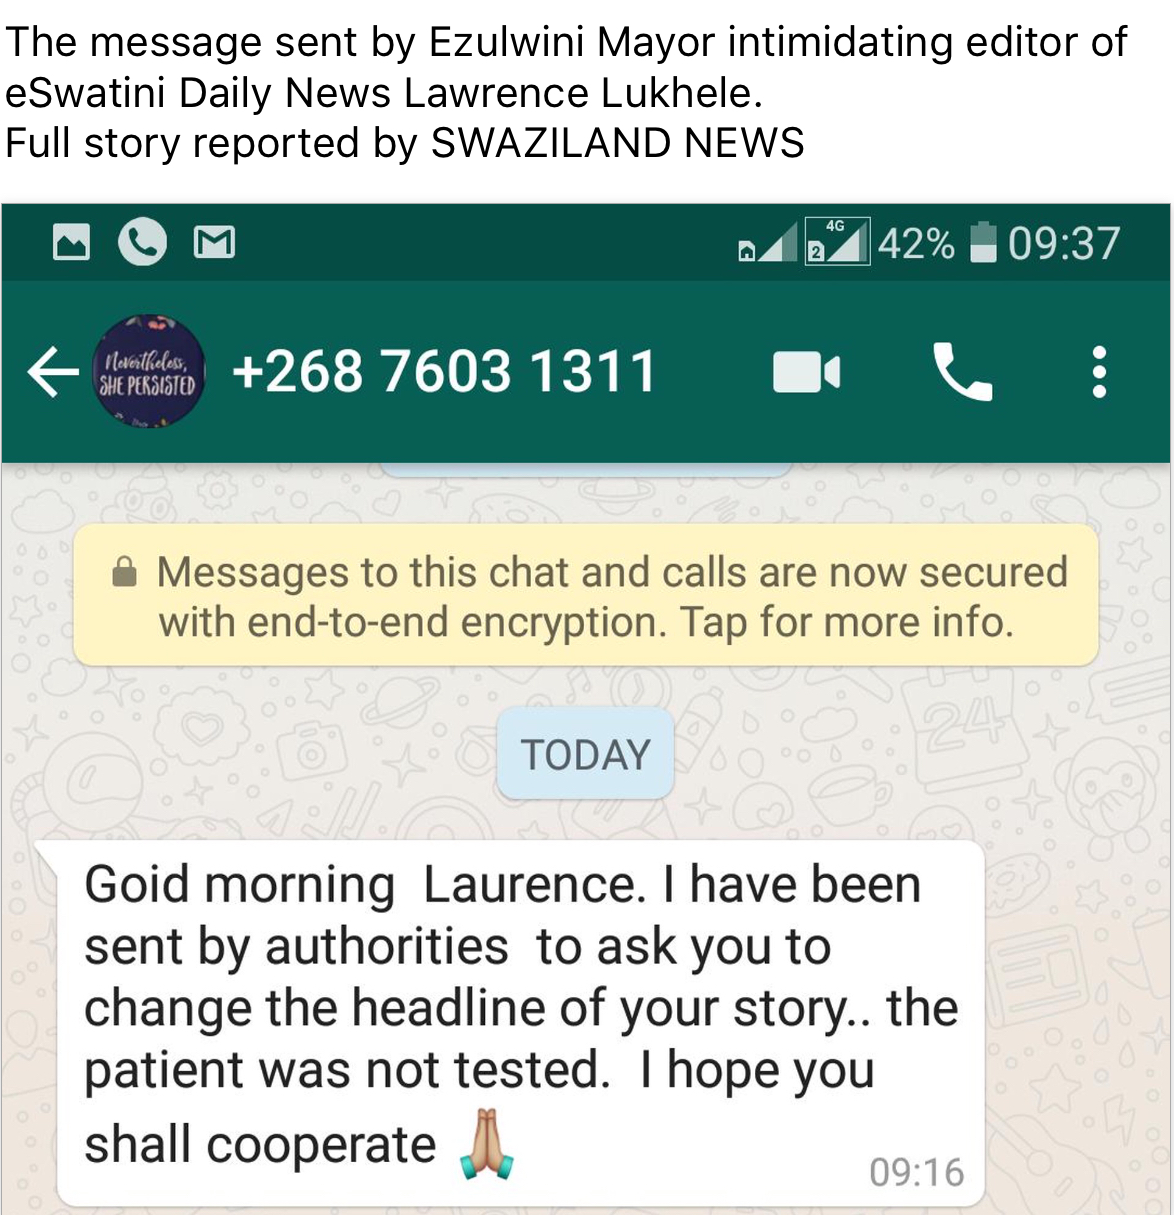 Labadzala send JC linked Mayor to intimidate editor for reporting 'coronavirus' death patient story